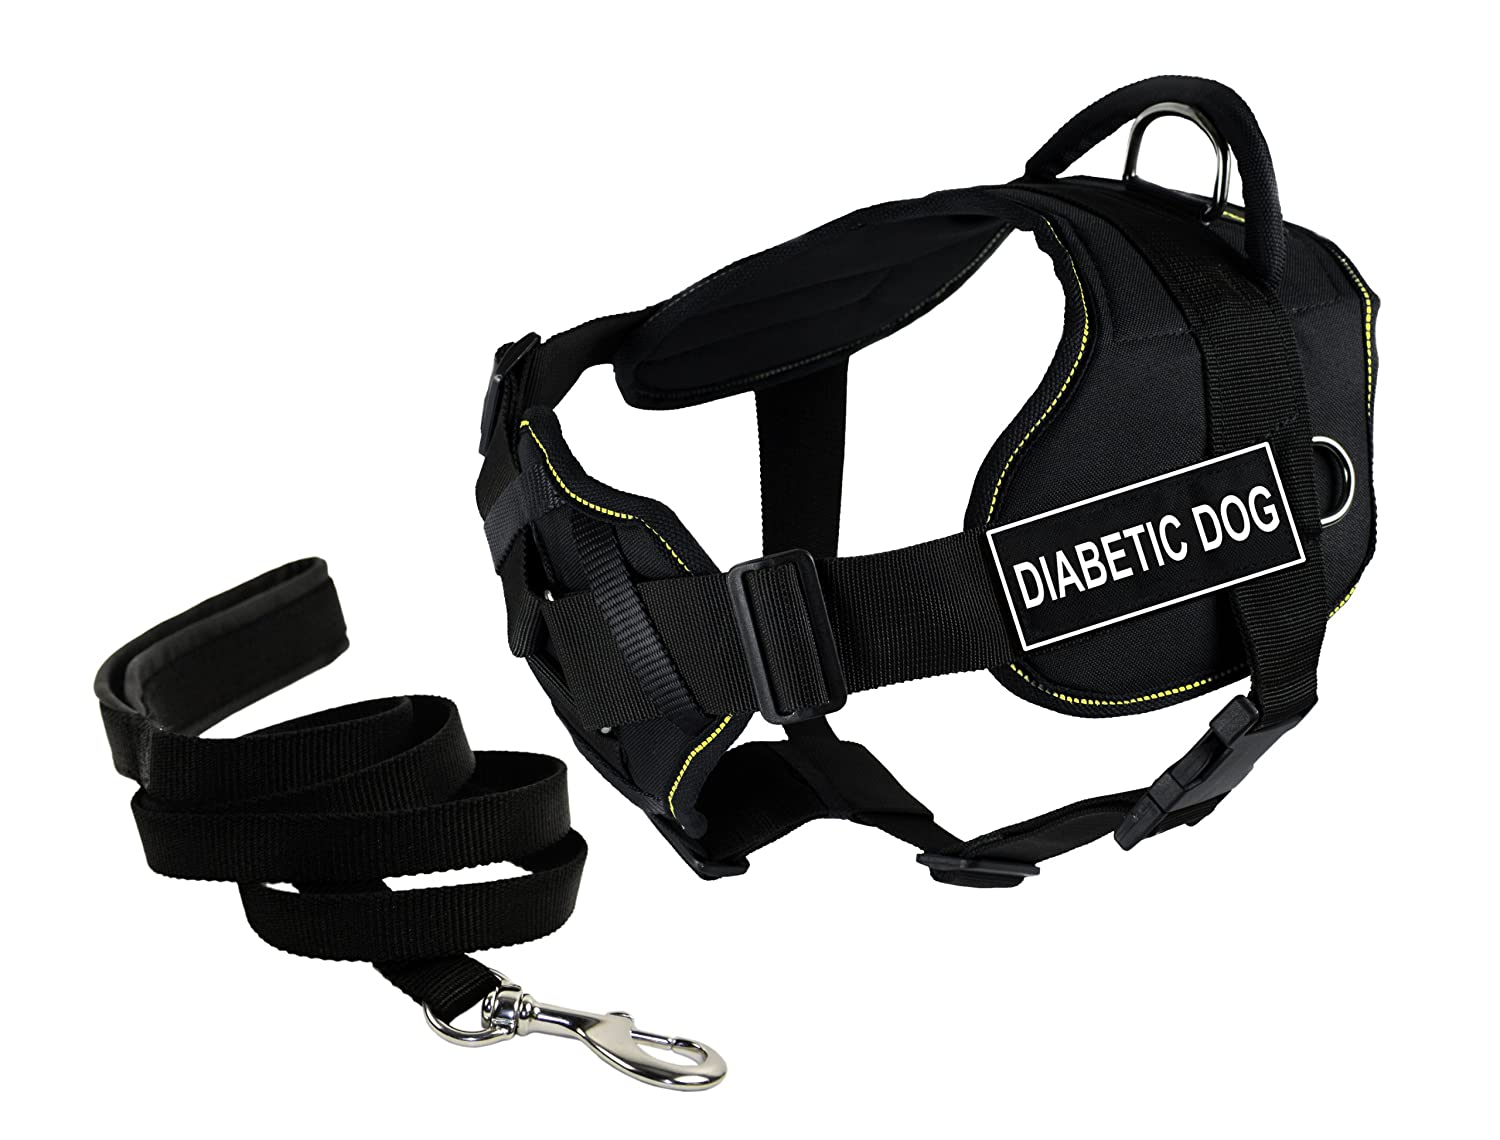 Dean & Tyler's DT Fun Chest Support DIABETIC DOG Harness, Large, with 6 ft Padded Puppy Leash.